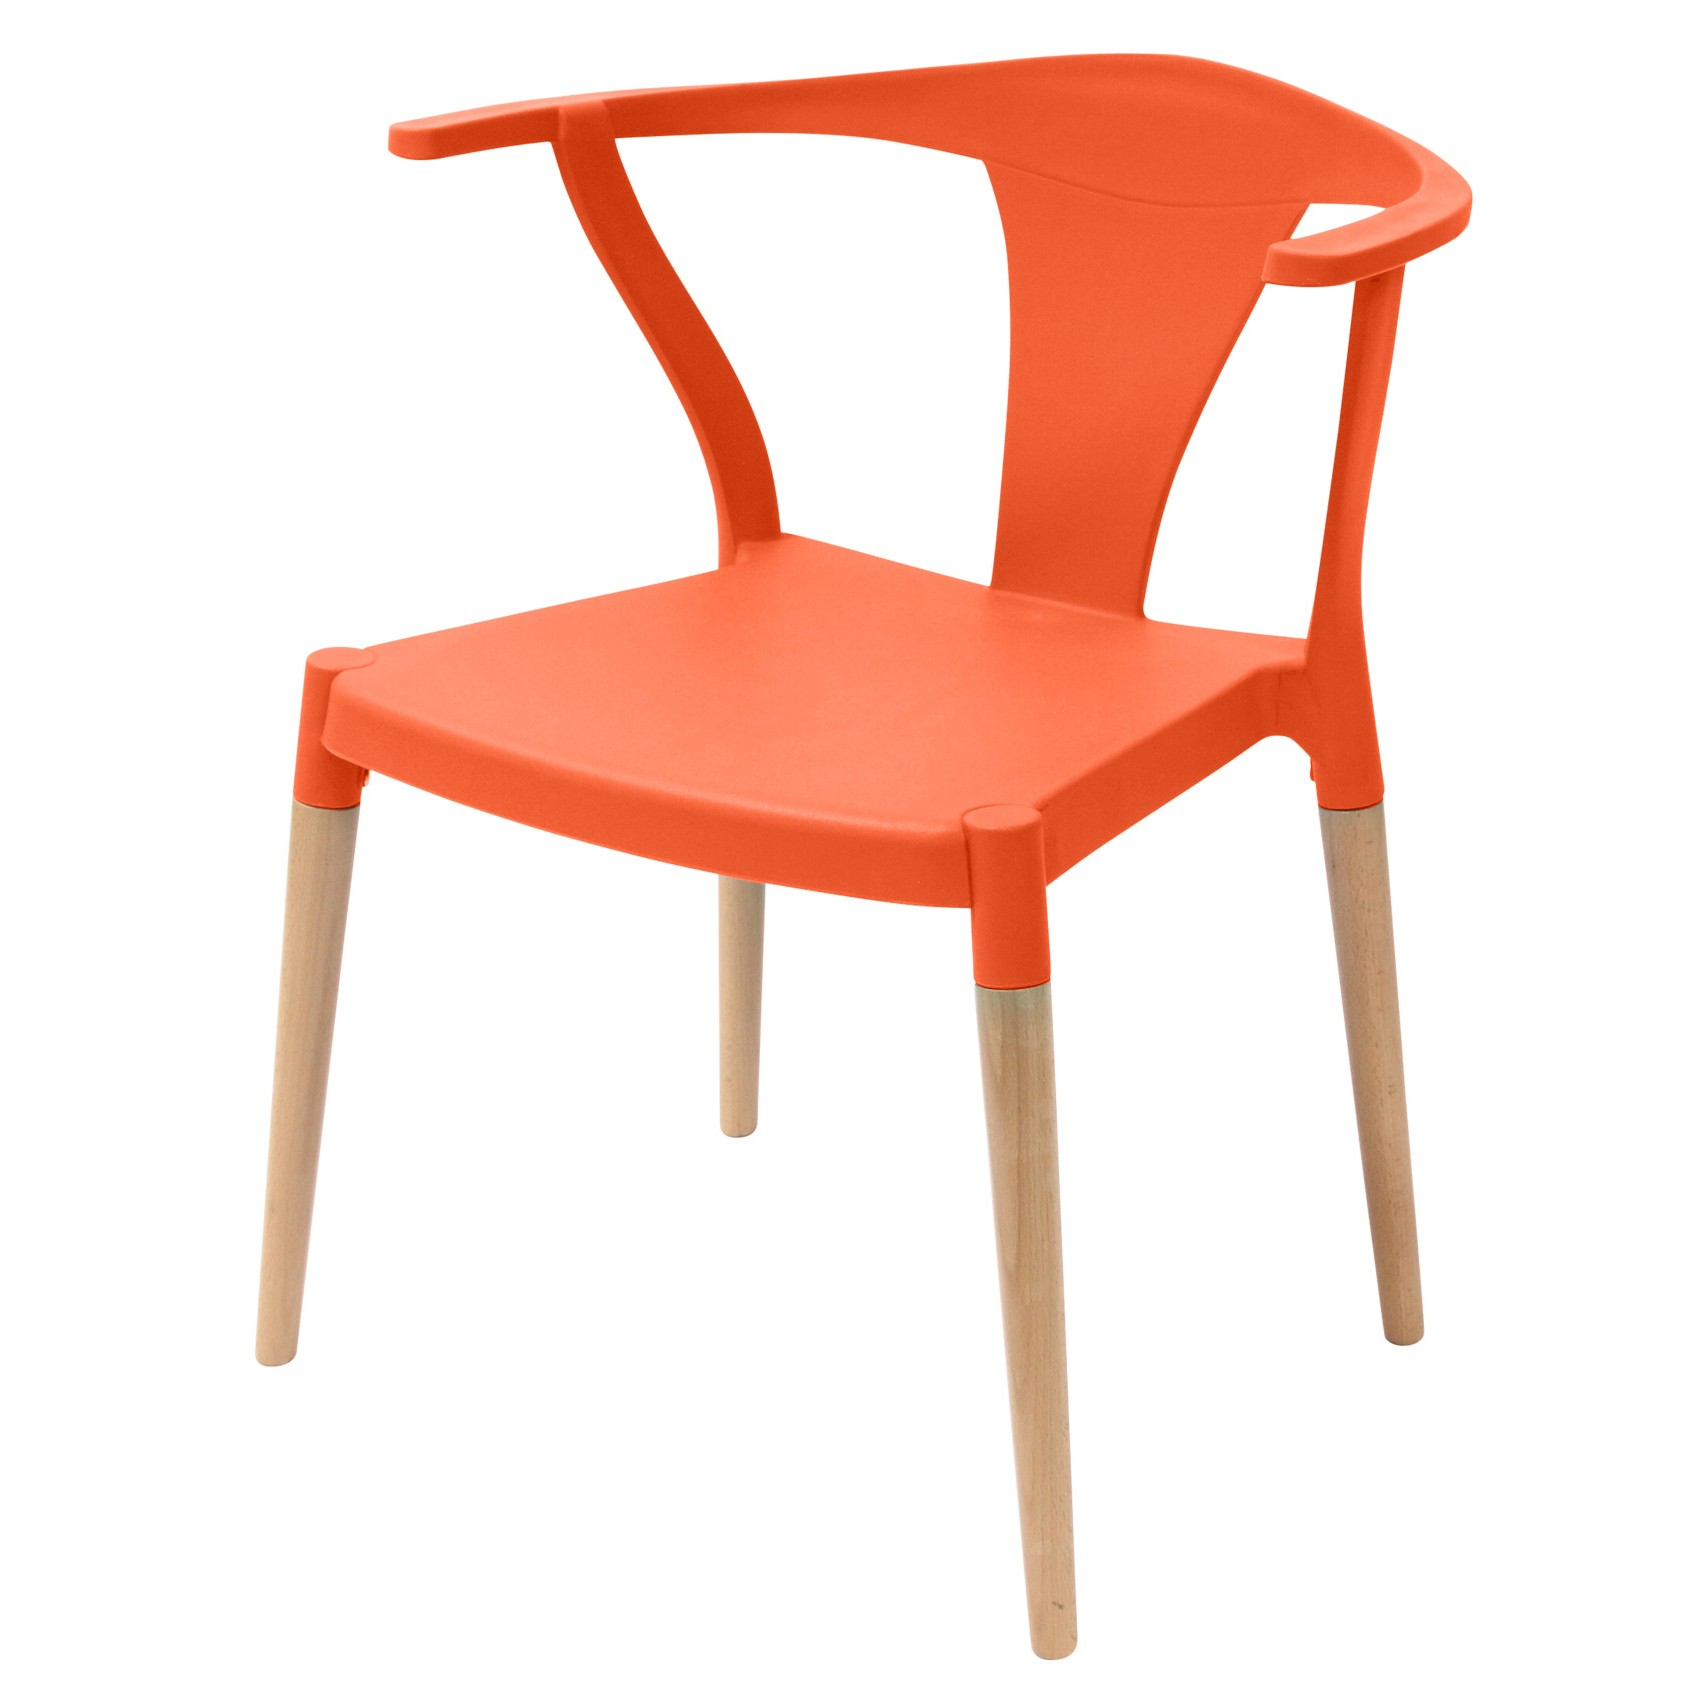 Icon Series Orange Modern Accent Dining Arm Chair Beech  : icon orange dining chairp1 from www.emoderndecor.com size 1694 x 1694 jpeg 149kB